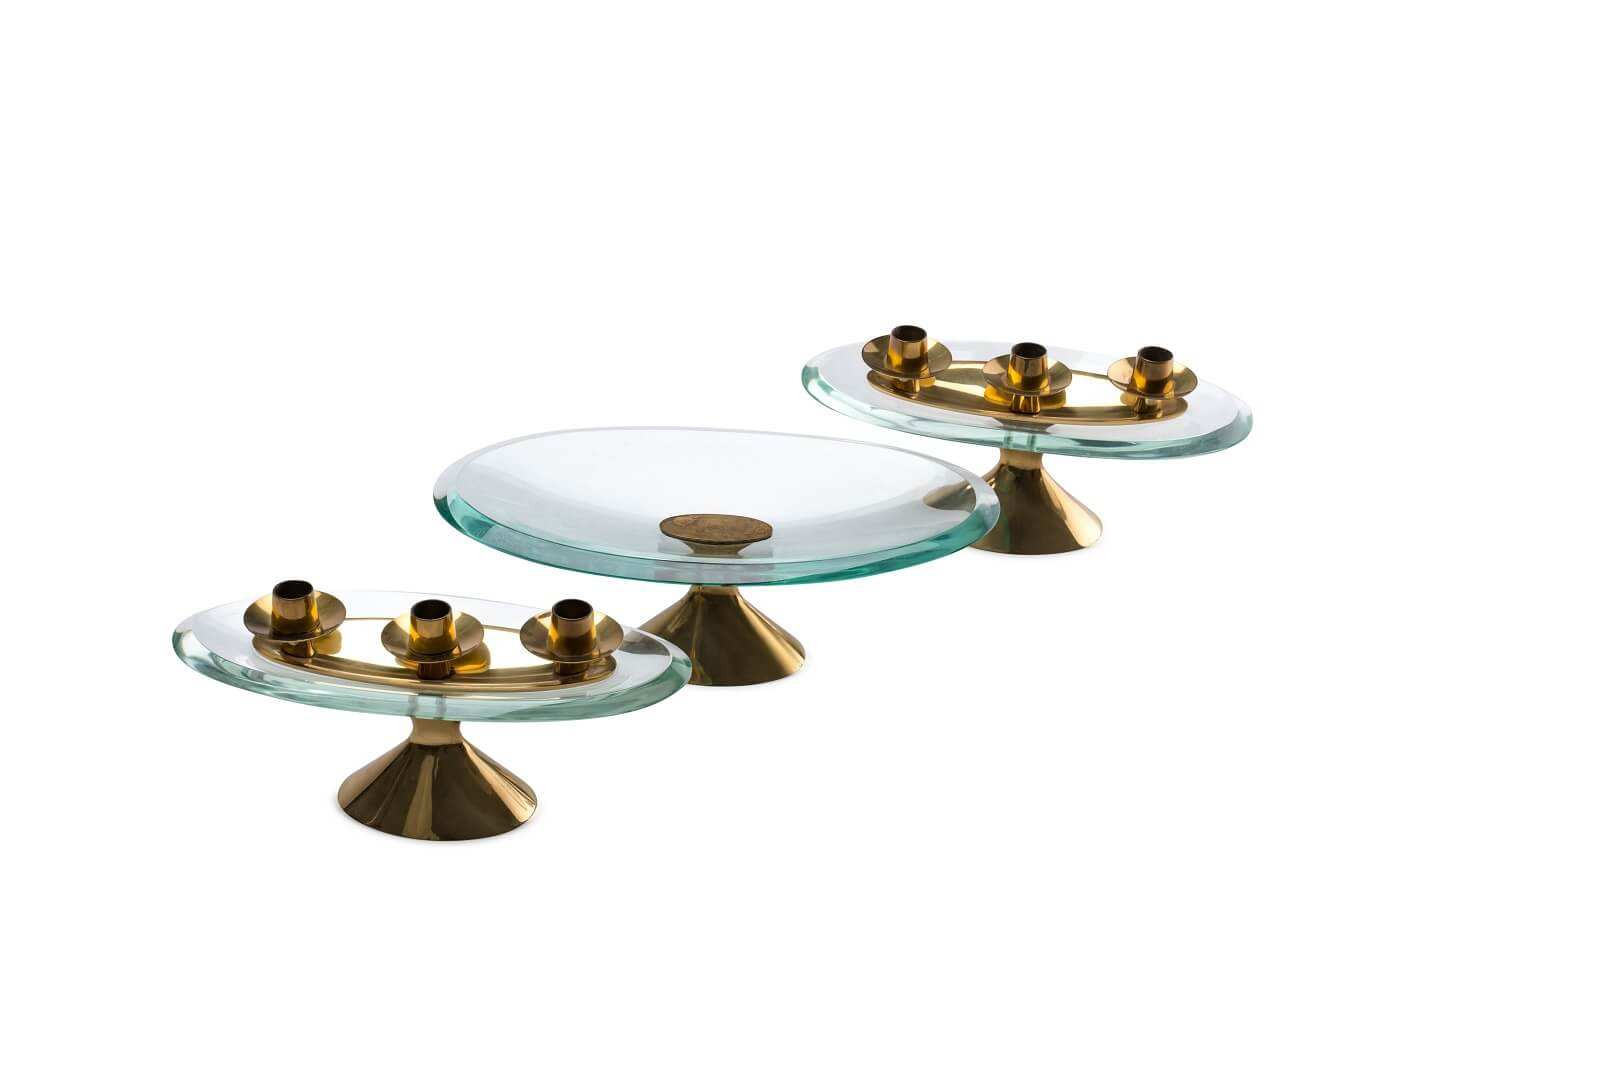 Figure Candlesticks & plate by Max Ingrand for sale